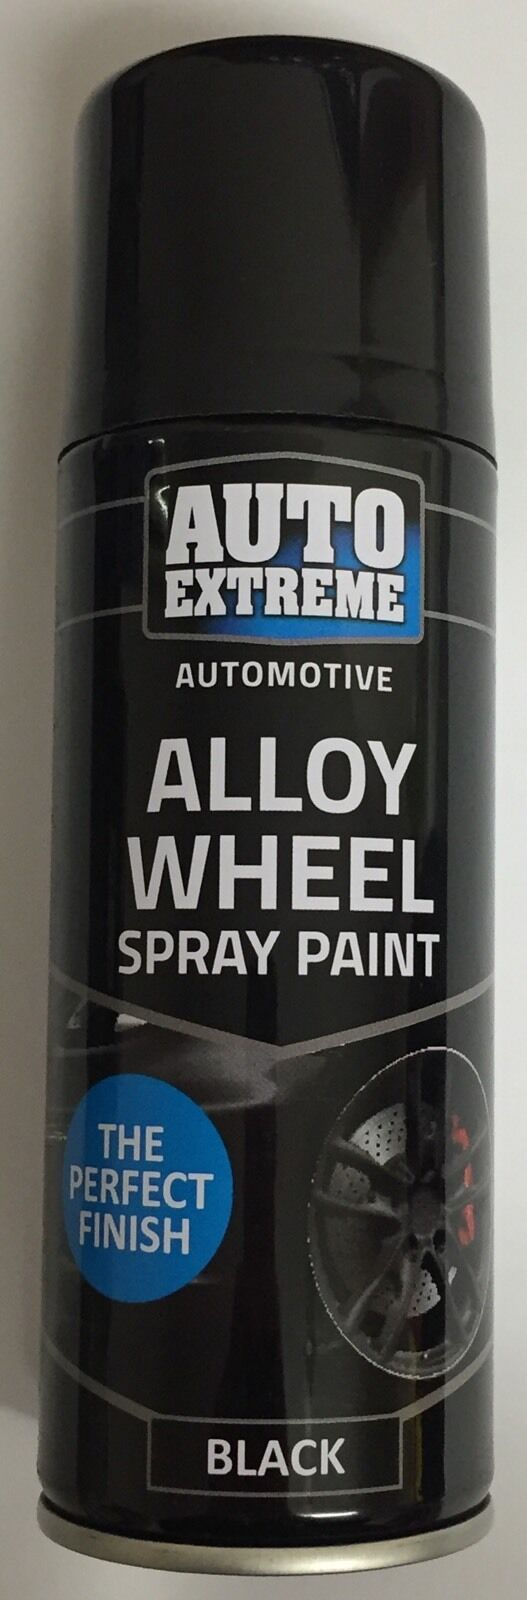 about black satin alloy wheel spray can restorer car bike auto paint. Black Bedroom Furniture Sets. Home Design Ideas